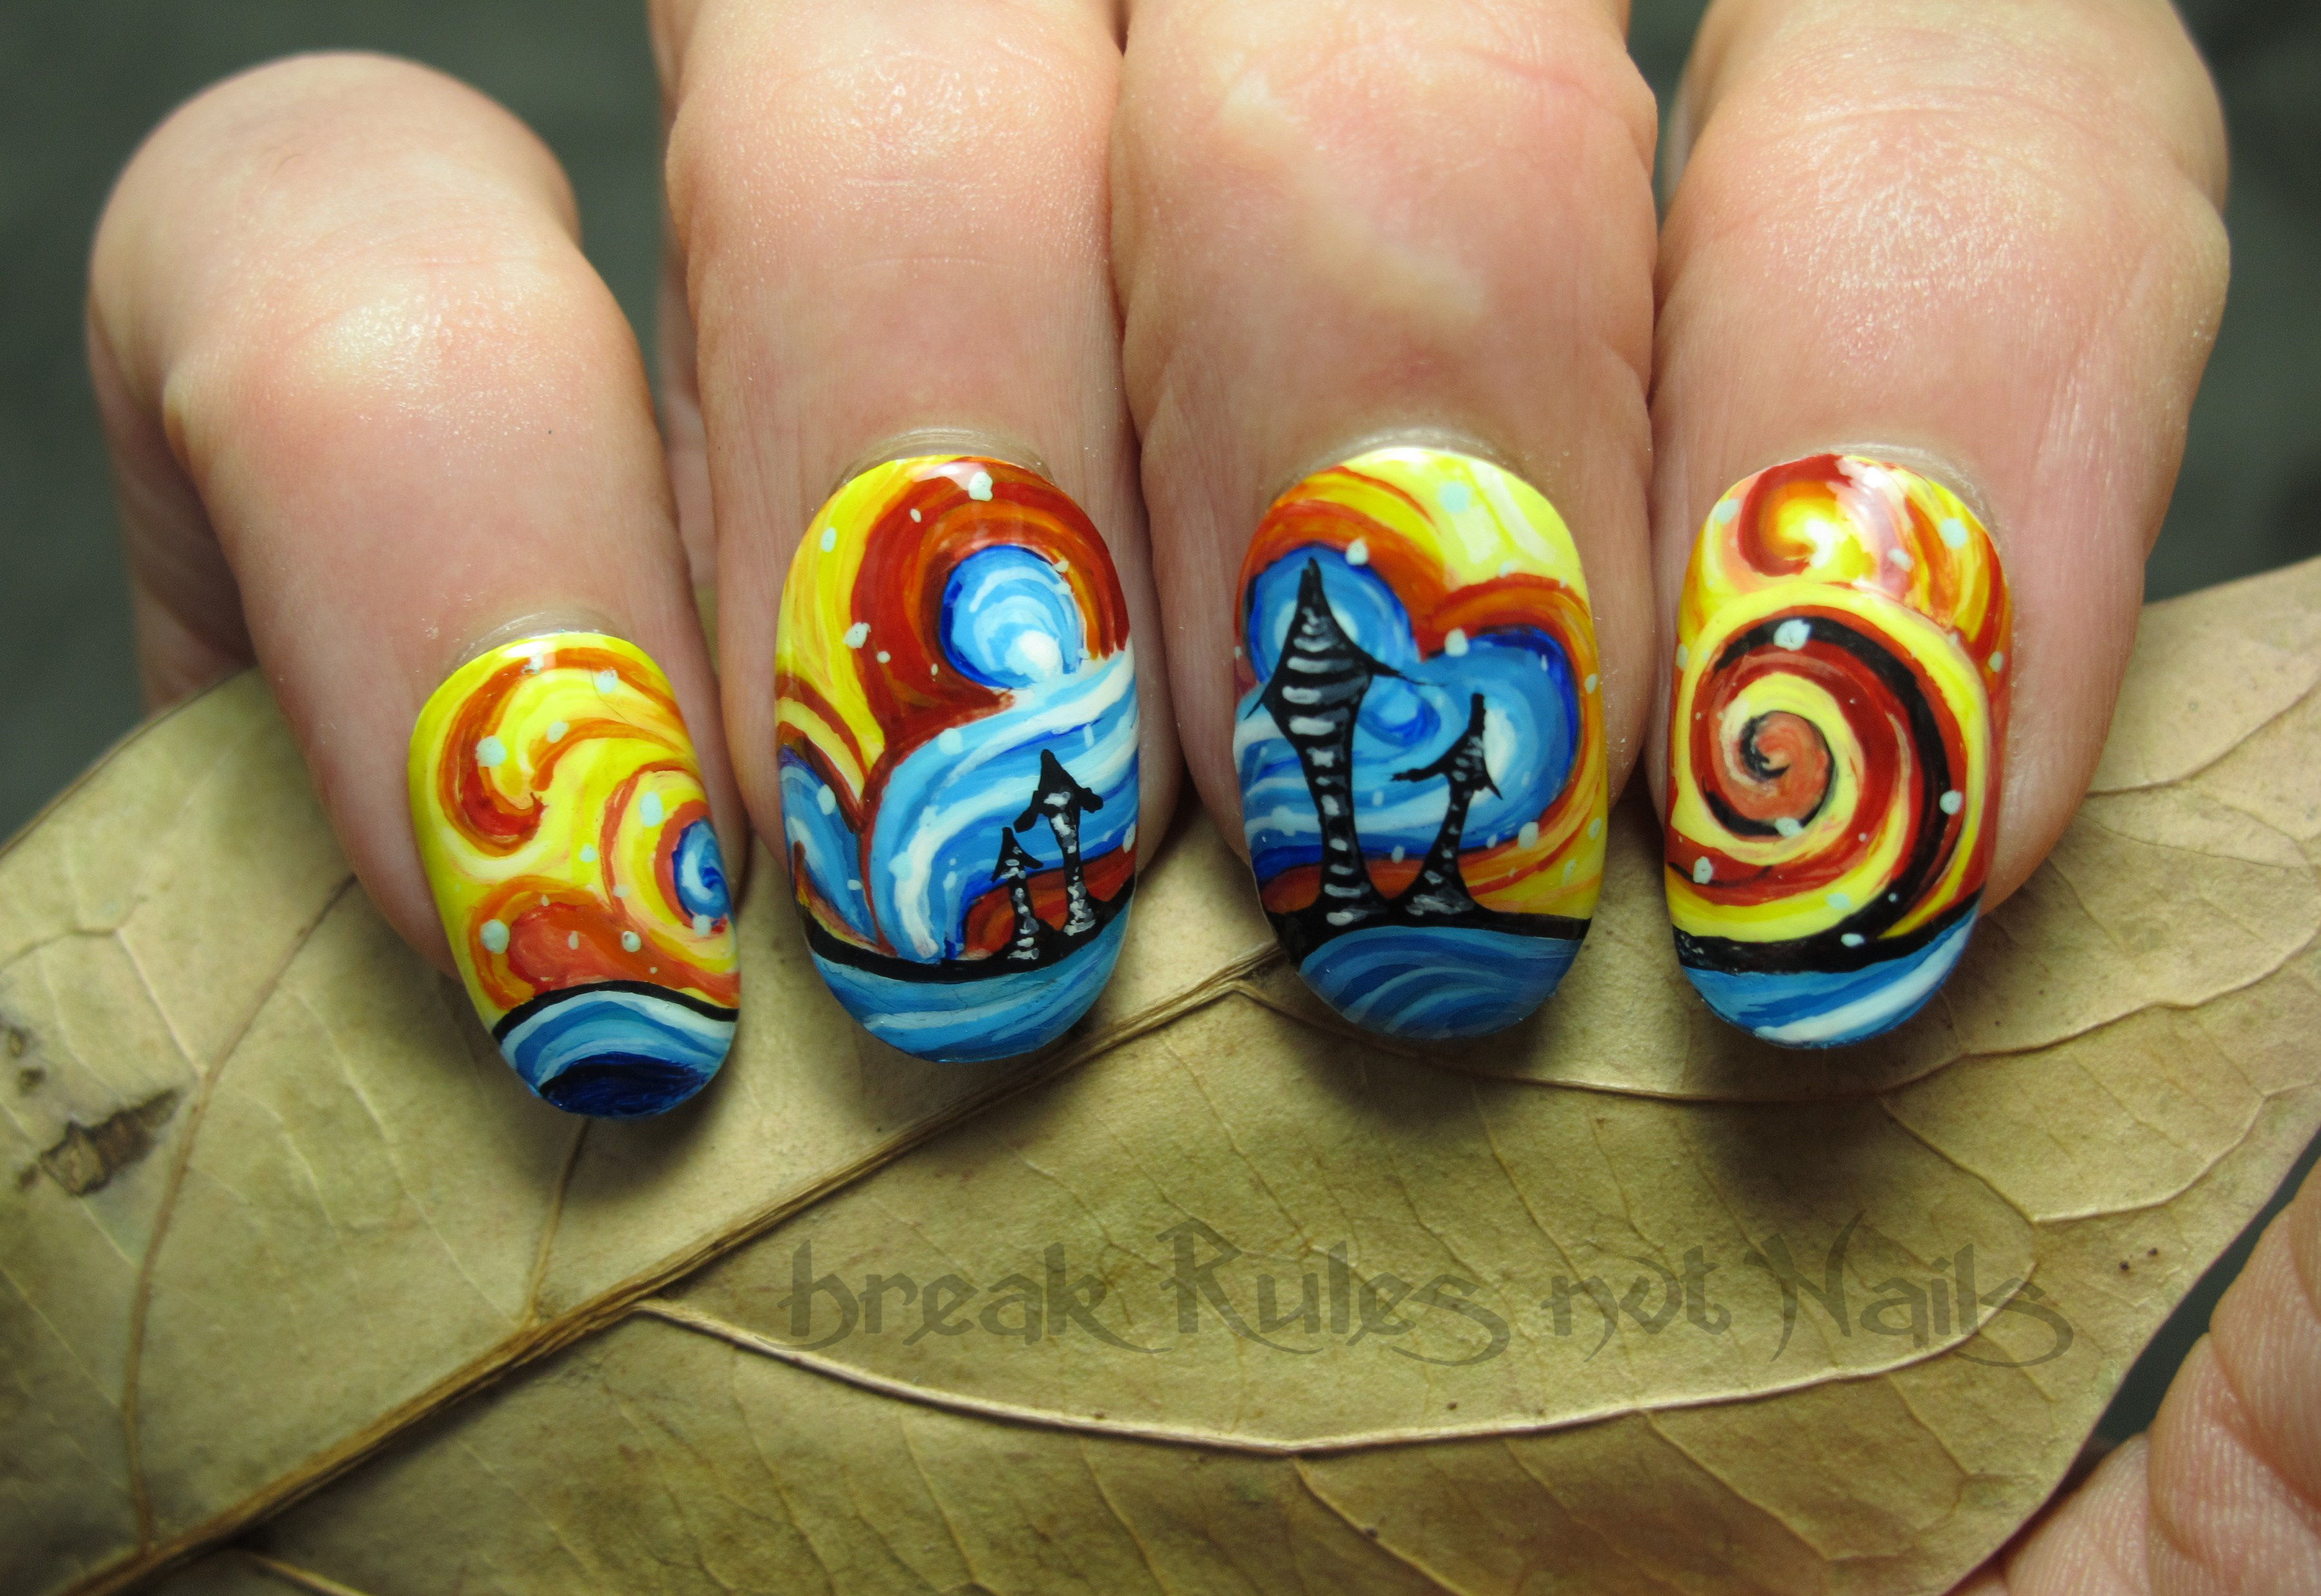 Abstract nail art break rules not nails abstract 2 prinsesfo Images